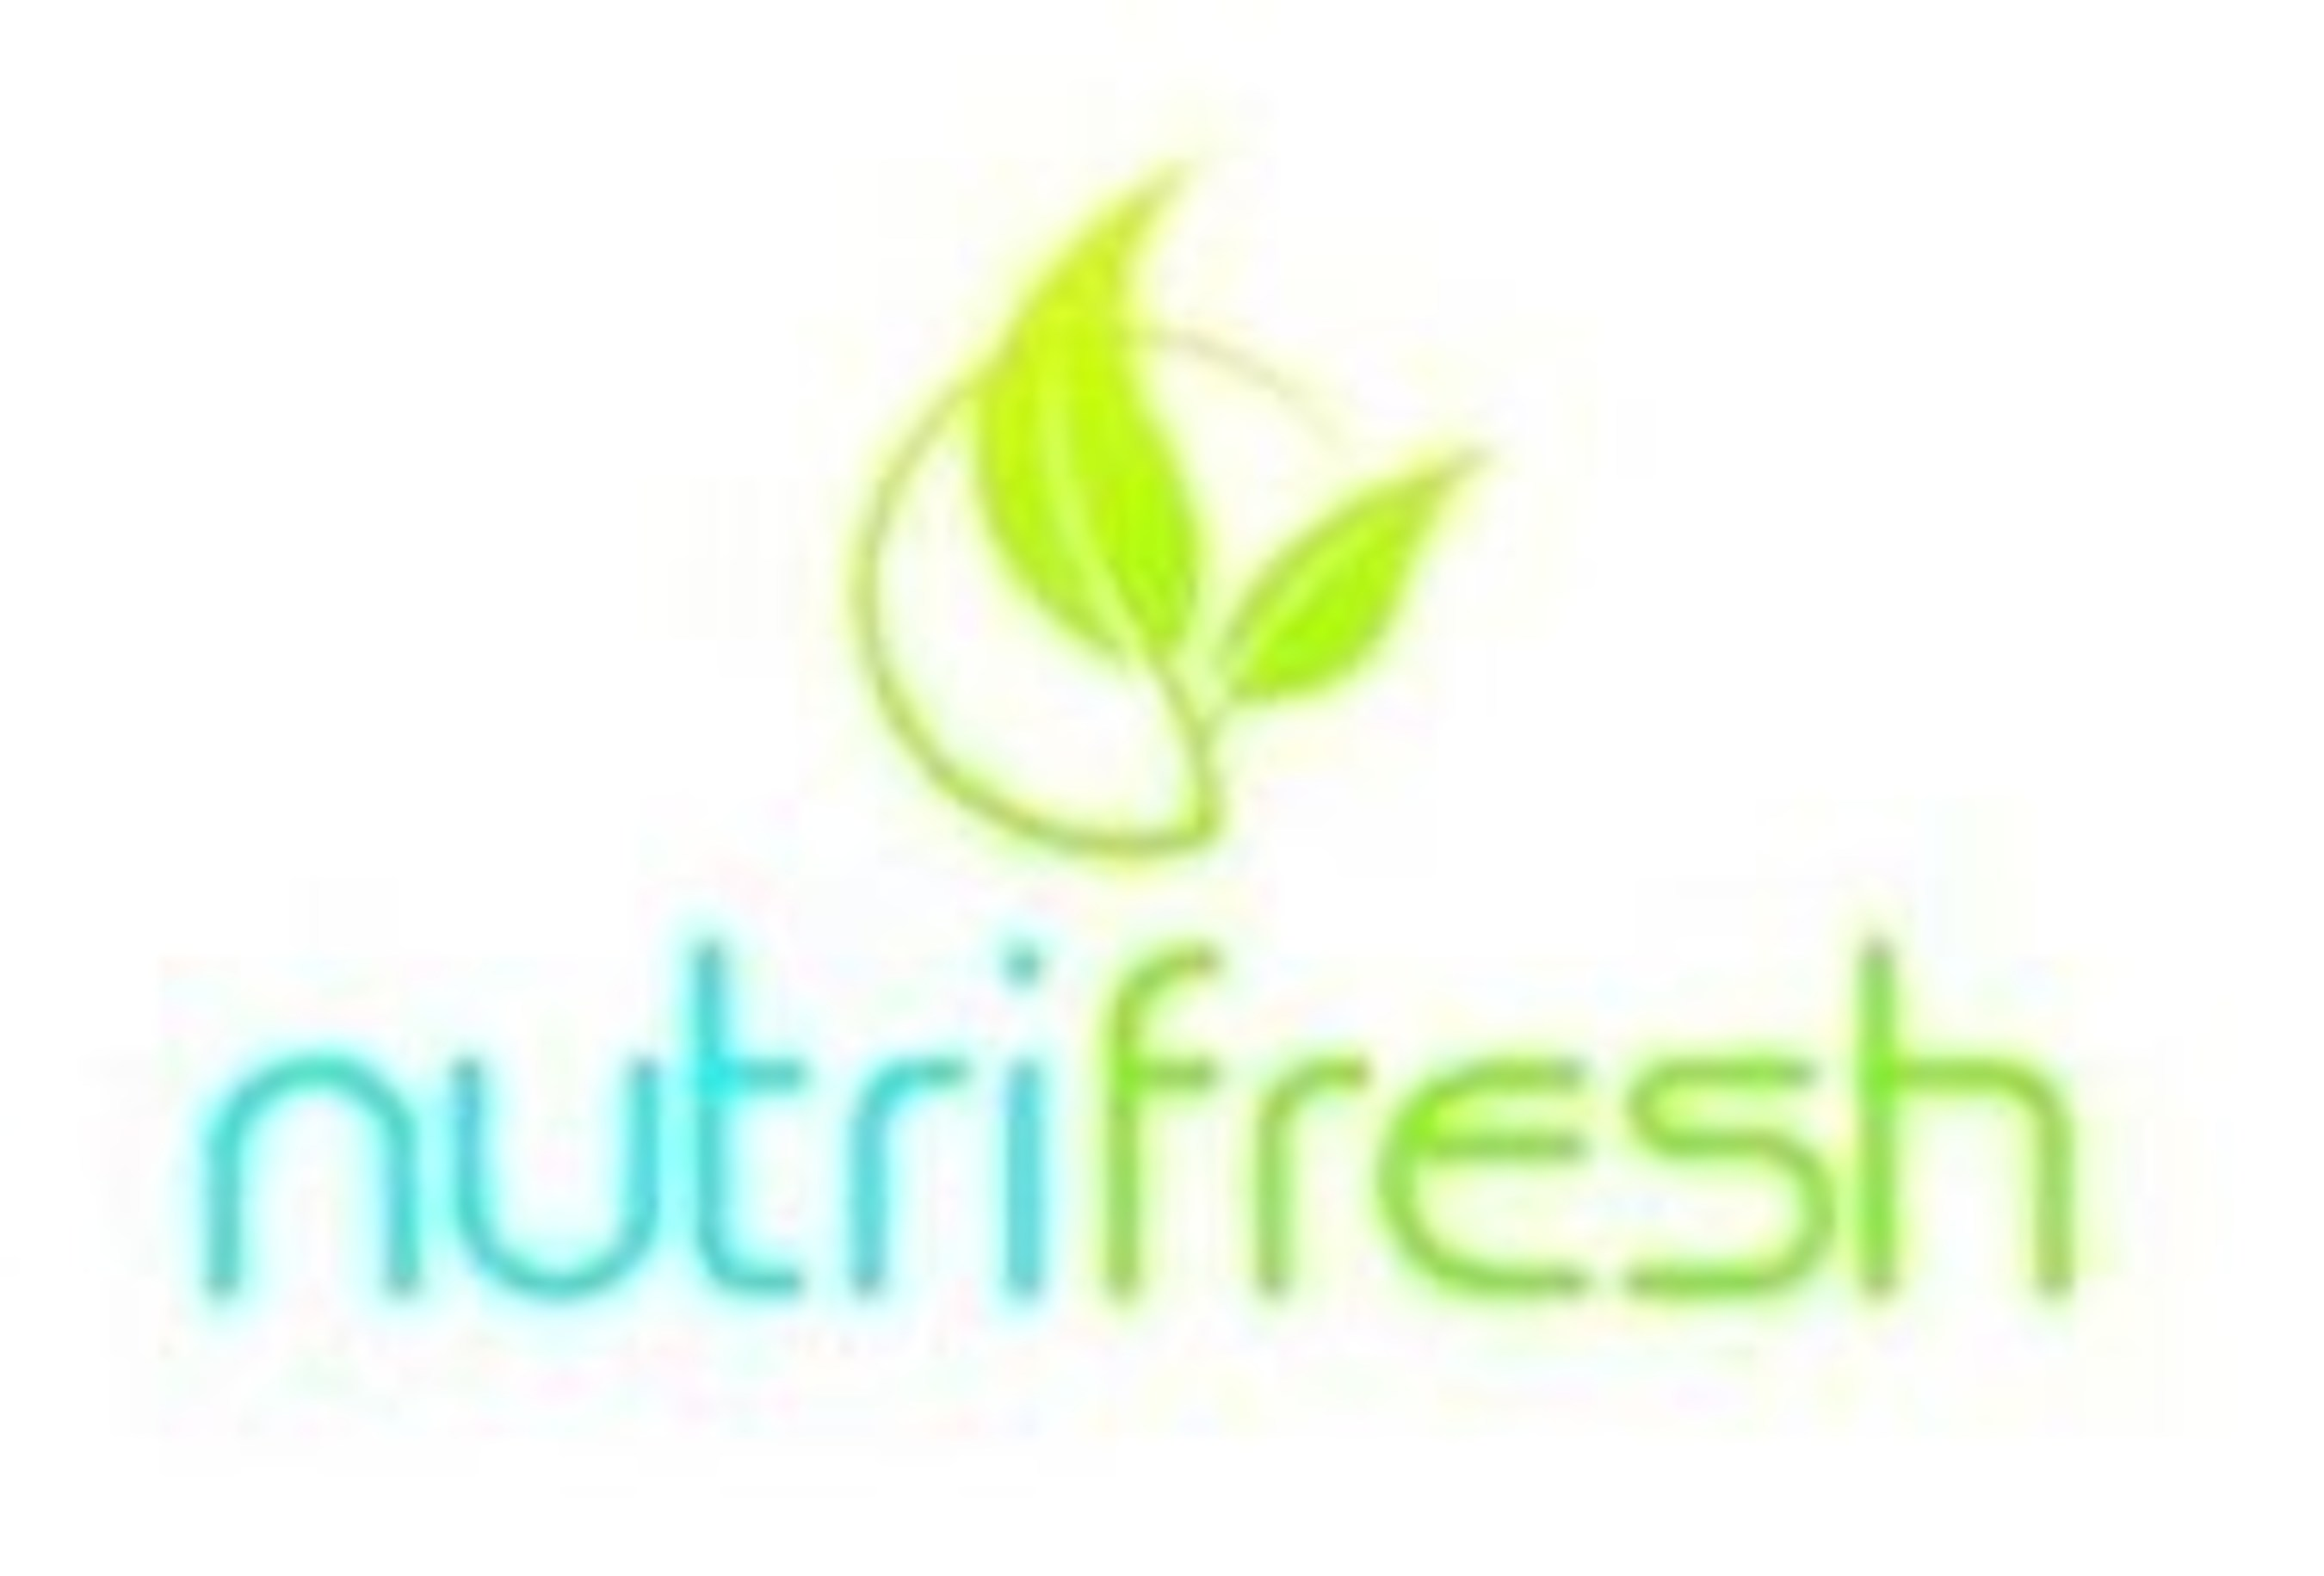 Juices Are Flowing at NutriFresh Services LLC- the Company Announces the Official Launch of Its